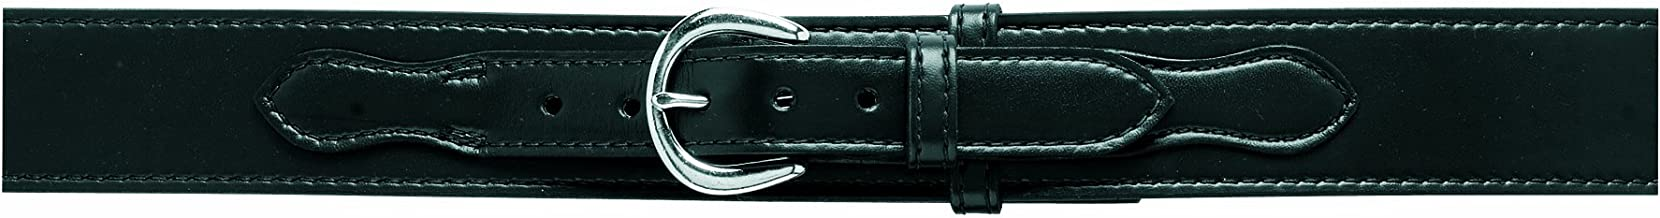 Safariland 146V Border Patrol, Style Duty Belt, Lined with Velcro (Hook), Black, Plain with Brass Buckle for 34-Inch Waist